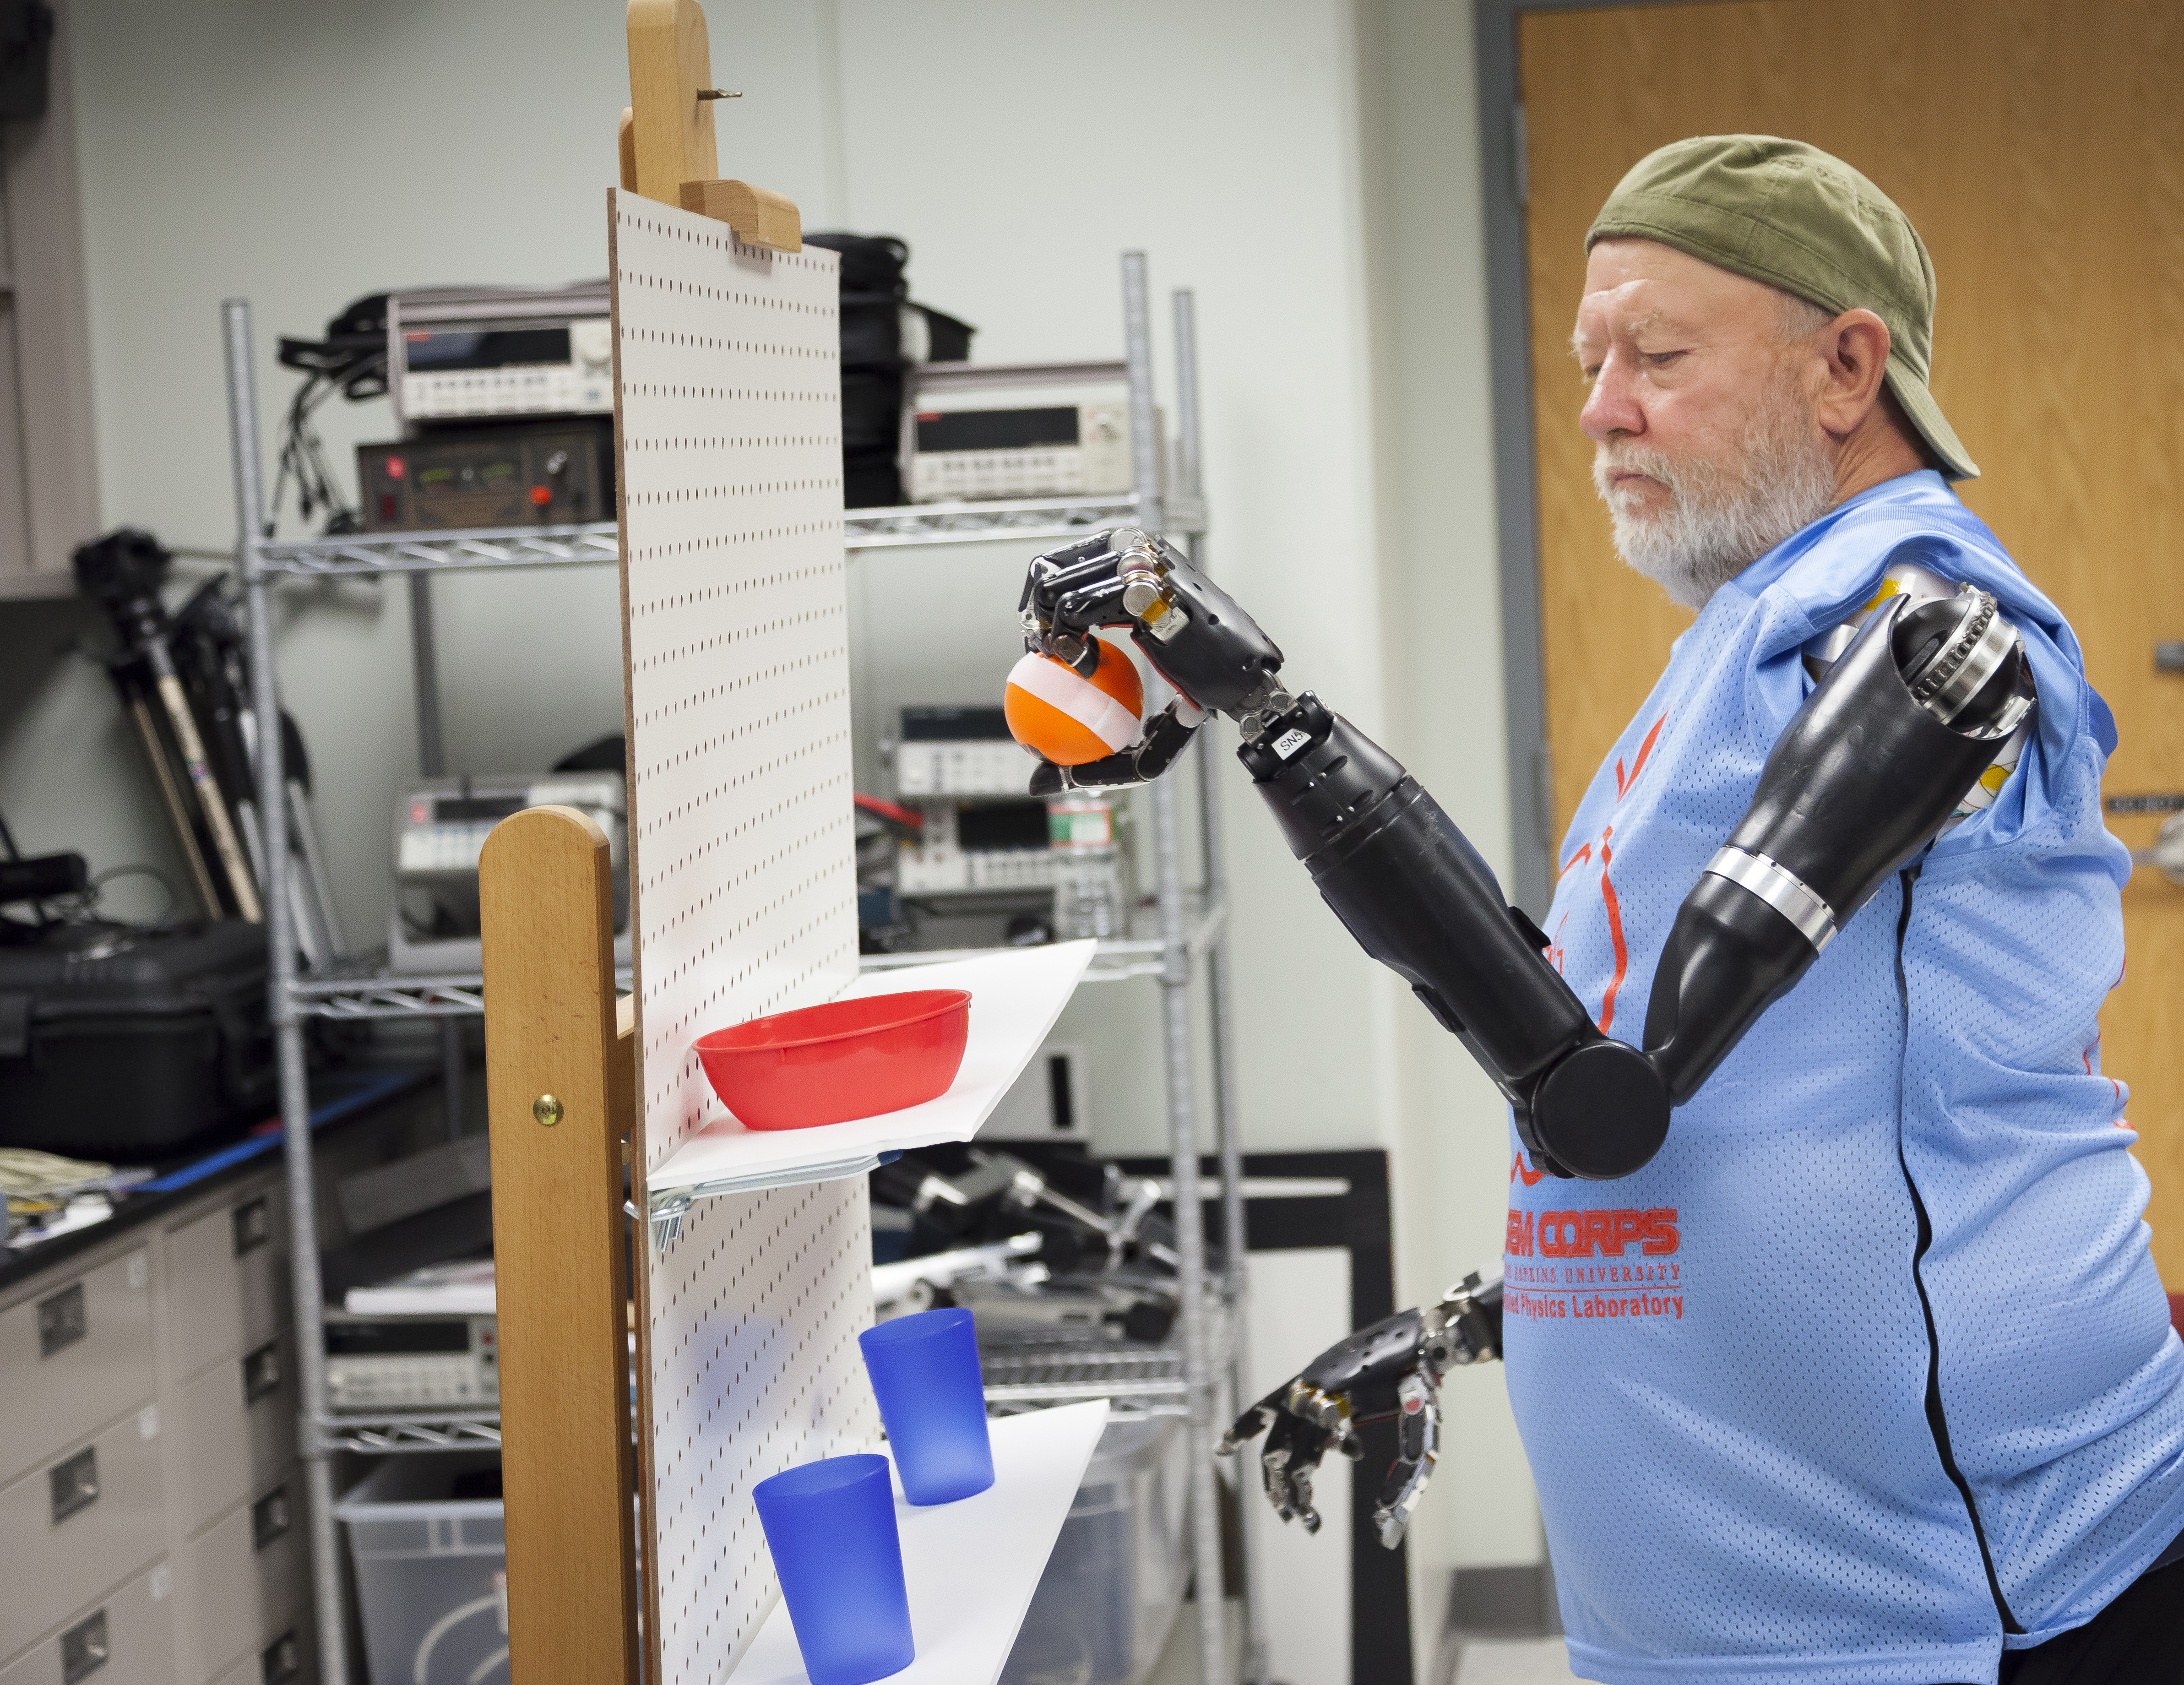 Double Amputee Is First To Control Two Robotic Arms Simultaneously